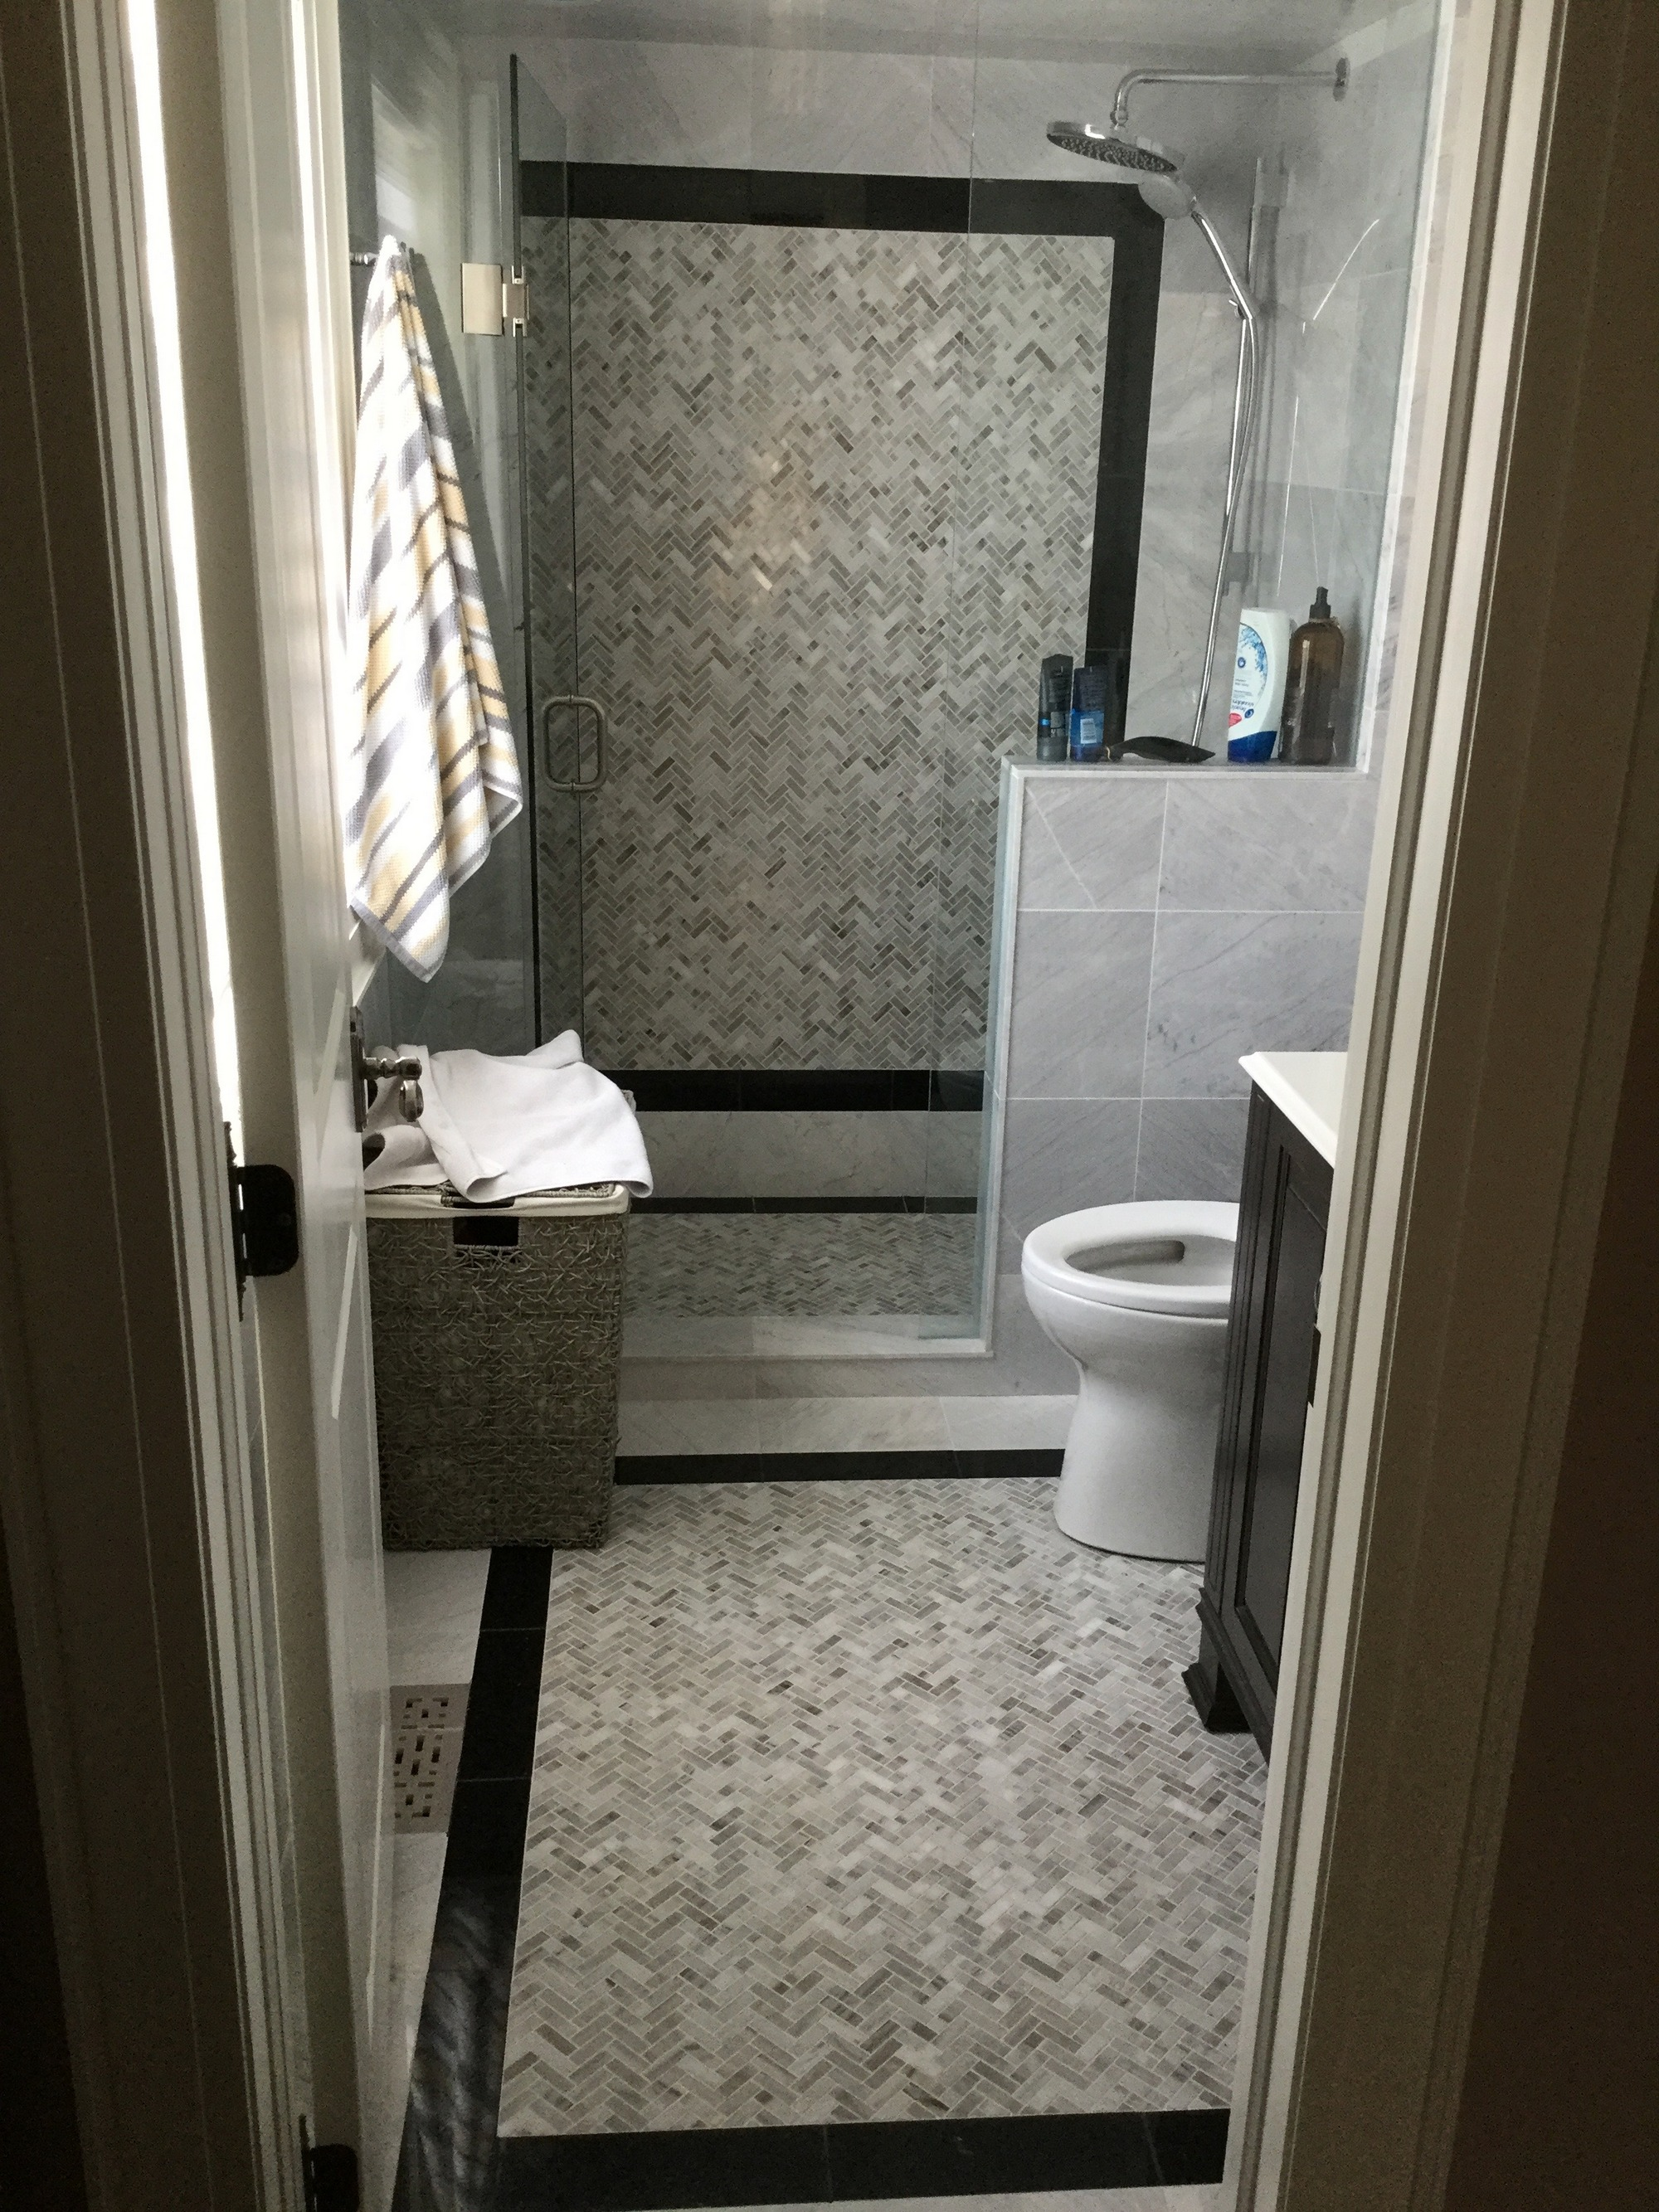 Professional tiling namer contracting tile floors arent just practical in high traffic areas they can also add value and create beauty to an existing room many people choose tile floors ppazfo